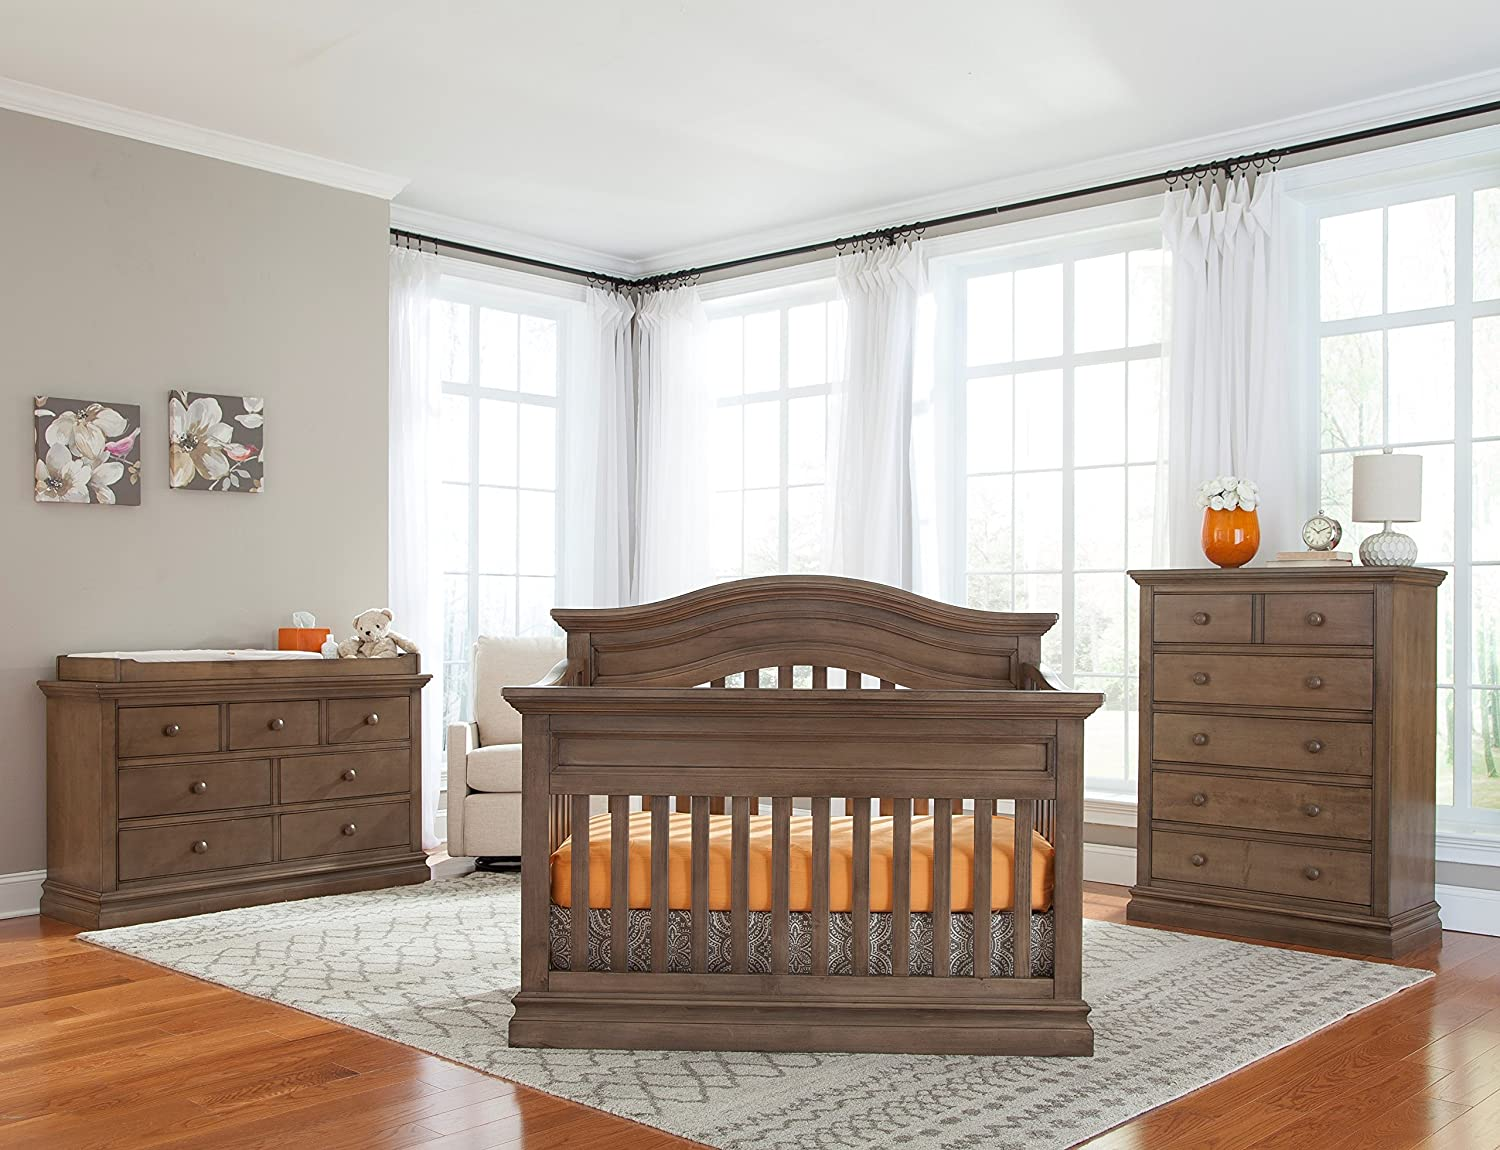 Amazon.com: Westwood Design Pine Ridge/Stone Harbor 7 Drawer Double Dresser  Chest, Cashew: Baby